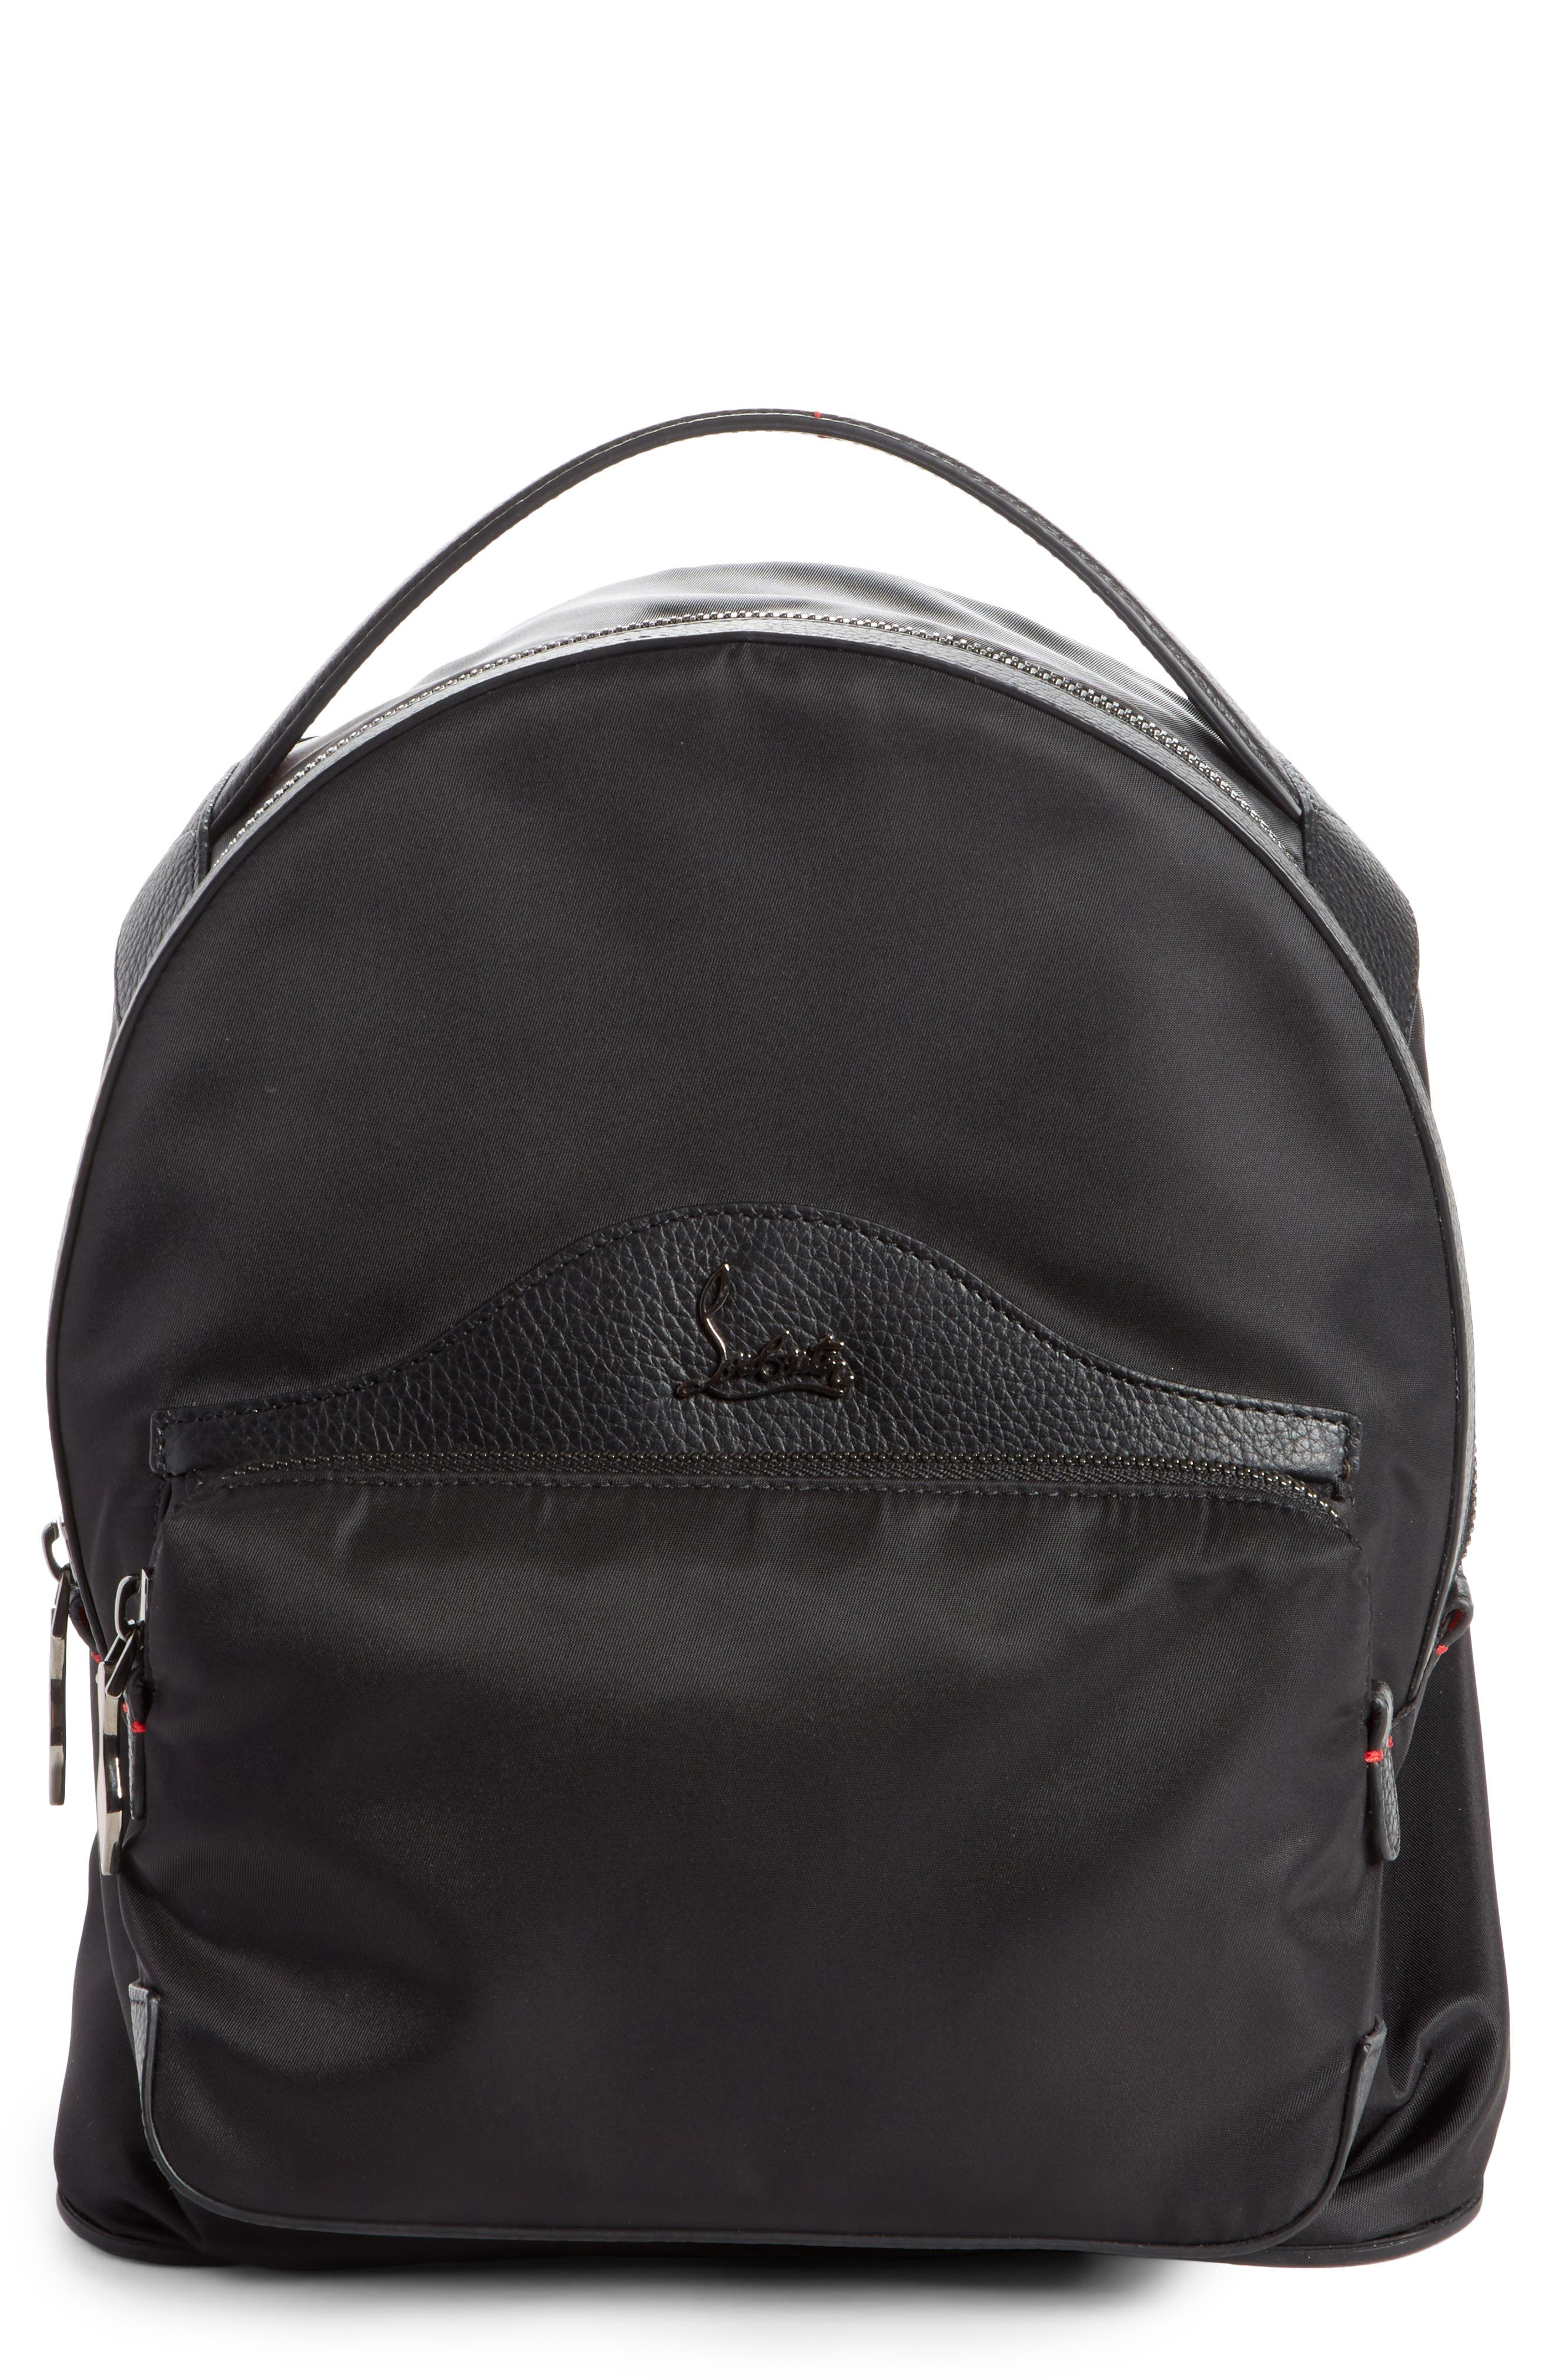 Christian Louboutin Small Backloubi Nylon Backpack